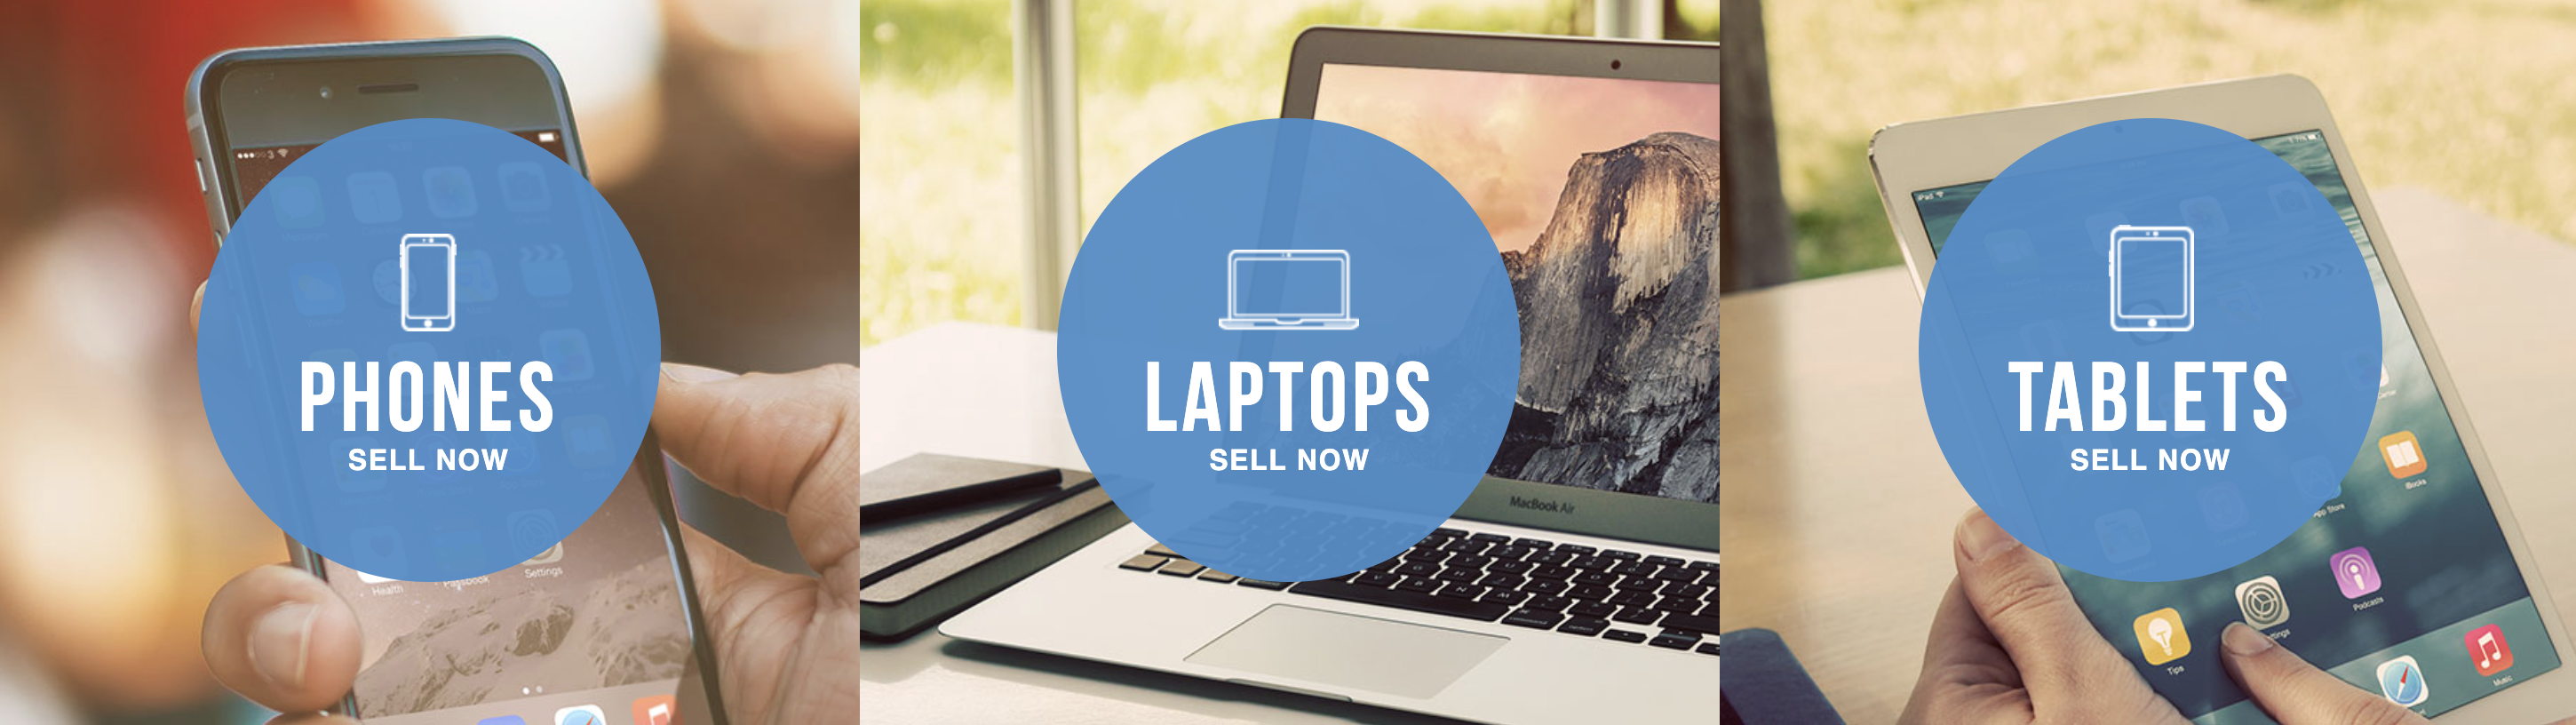 Recycle your devices for cash with 9to5 mac 2019 04 16 17 50 09 2